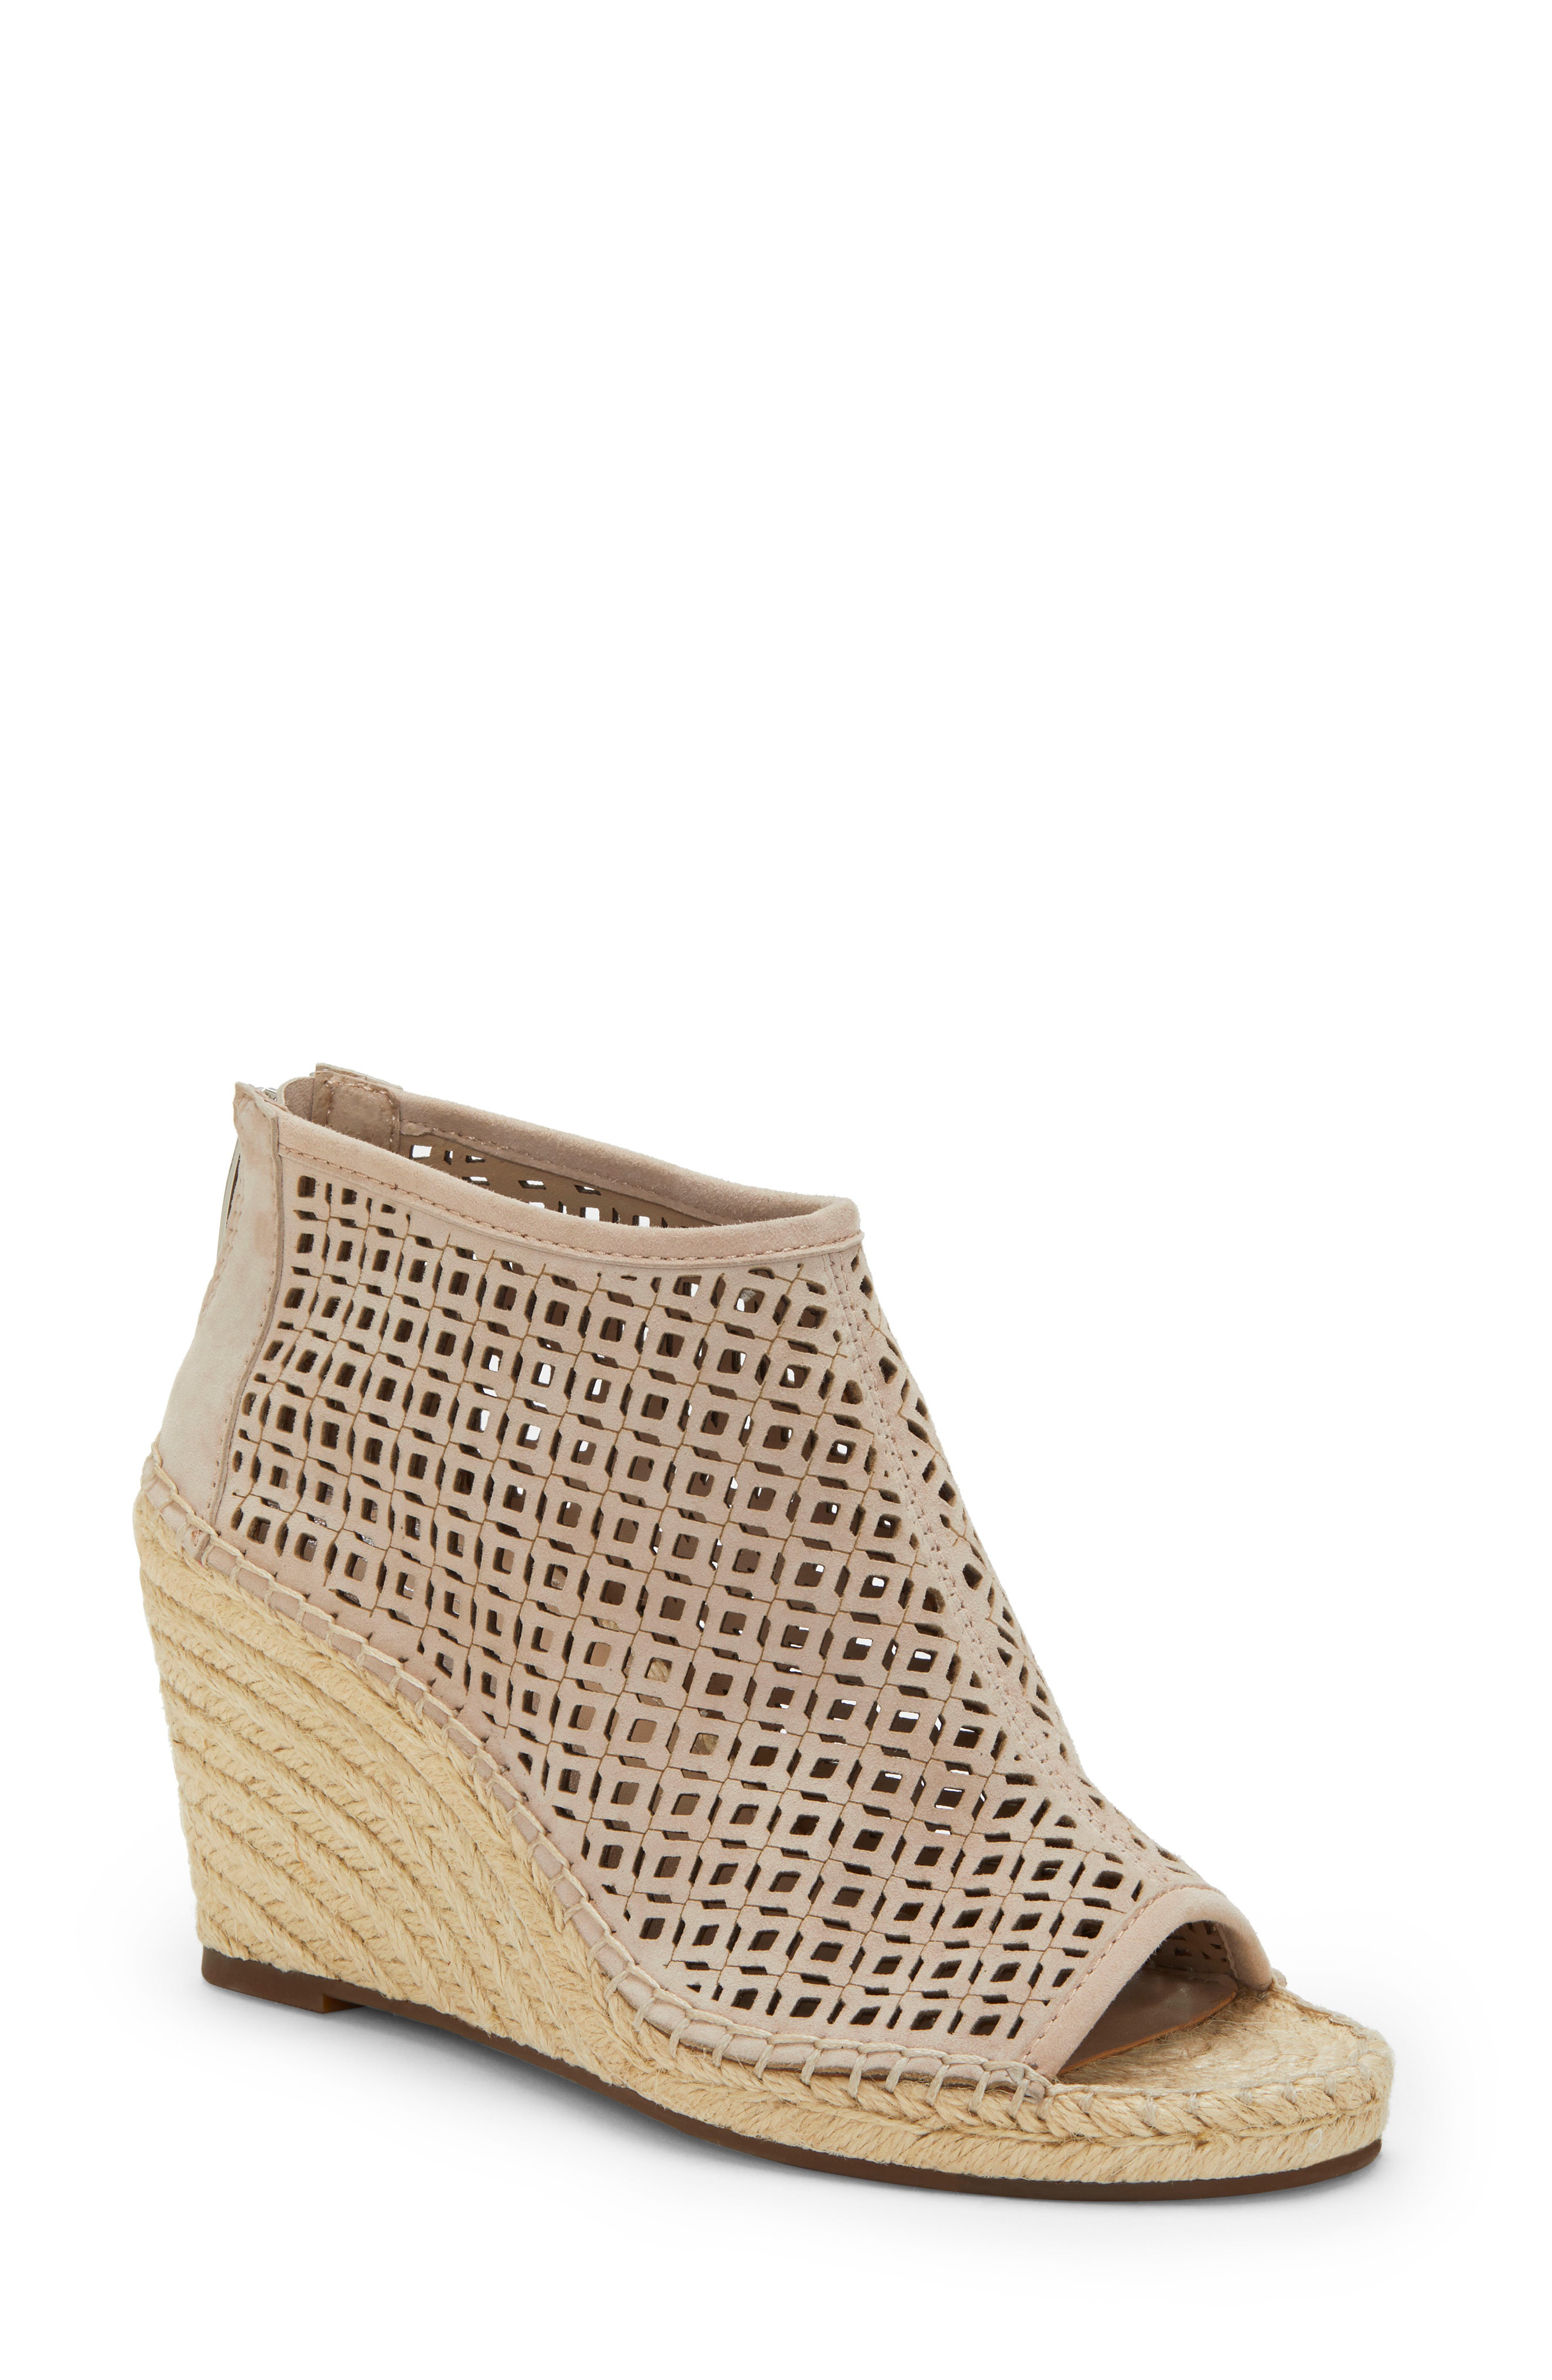 9d6ee3a041f Women's Lereena Caged Leather Peep Toe Espadrille Wedge Sandals in  Moonstone Suede